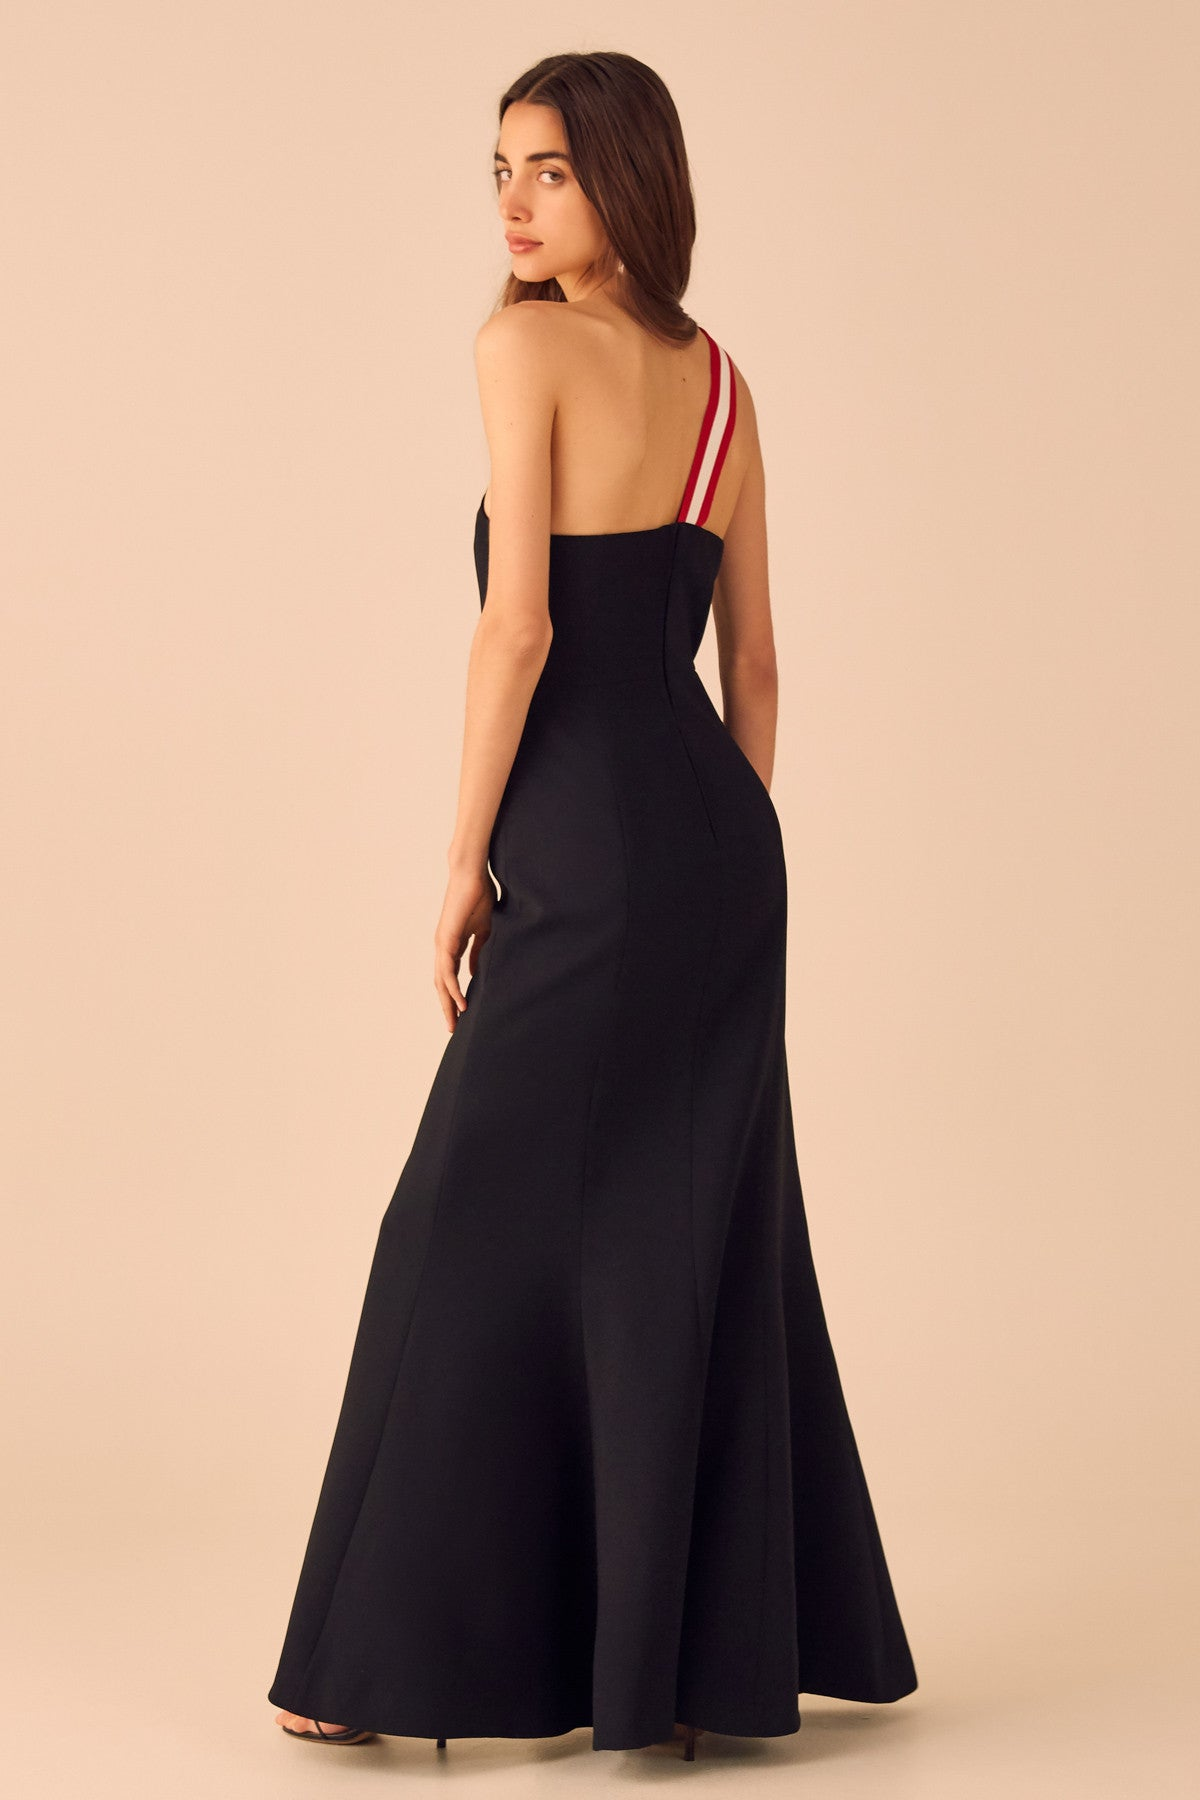 PURSUE GOWN black w red